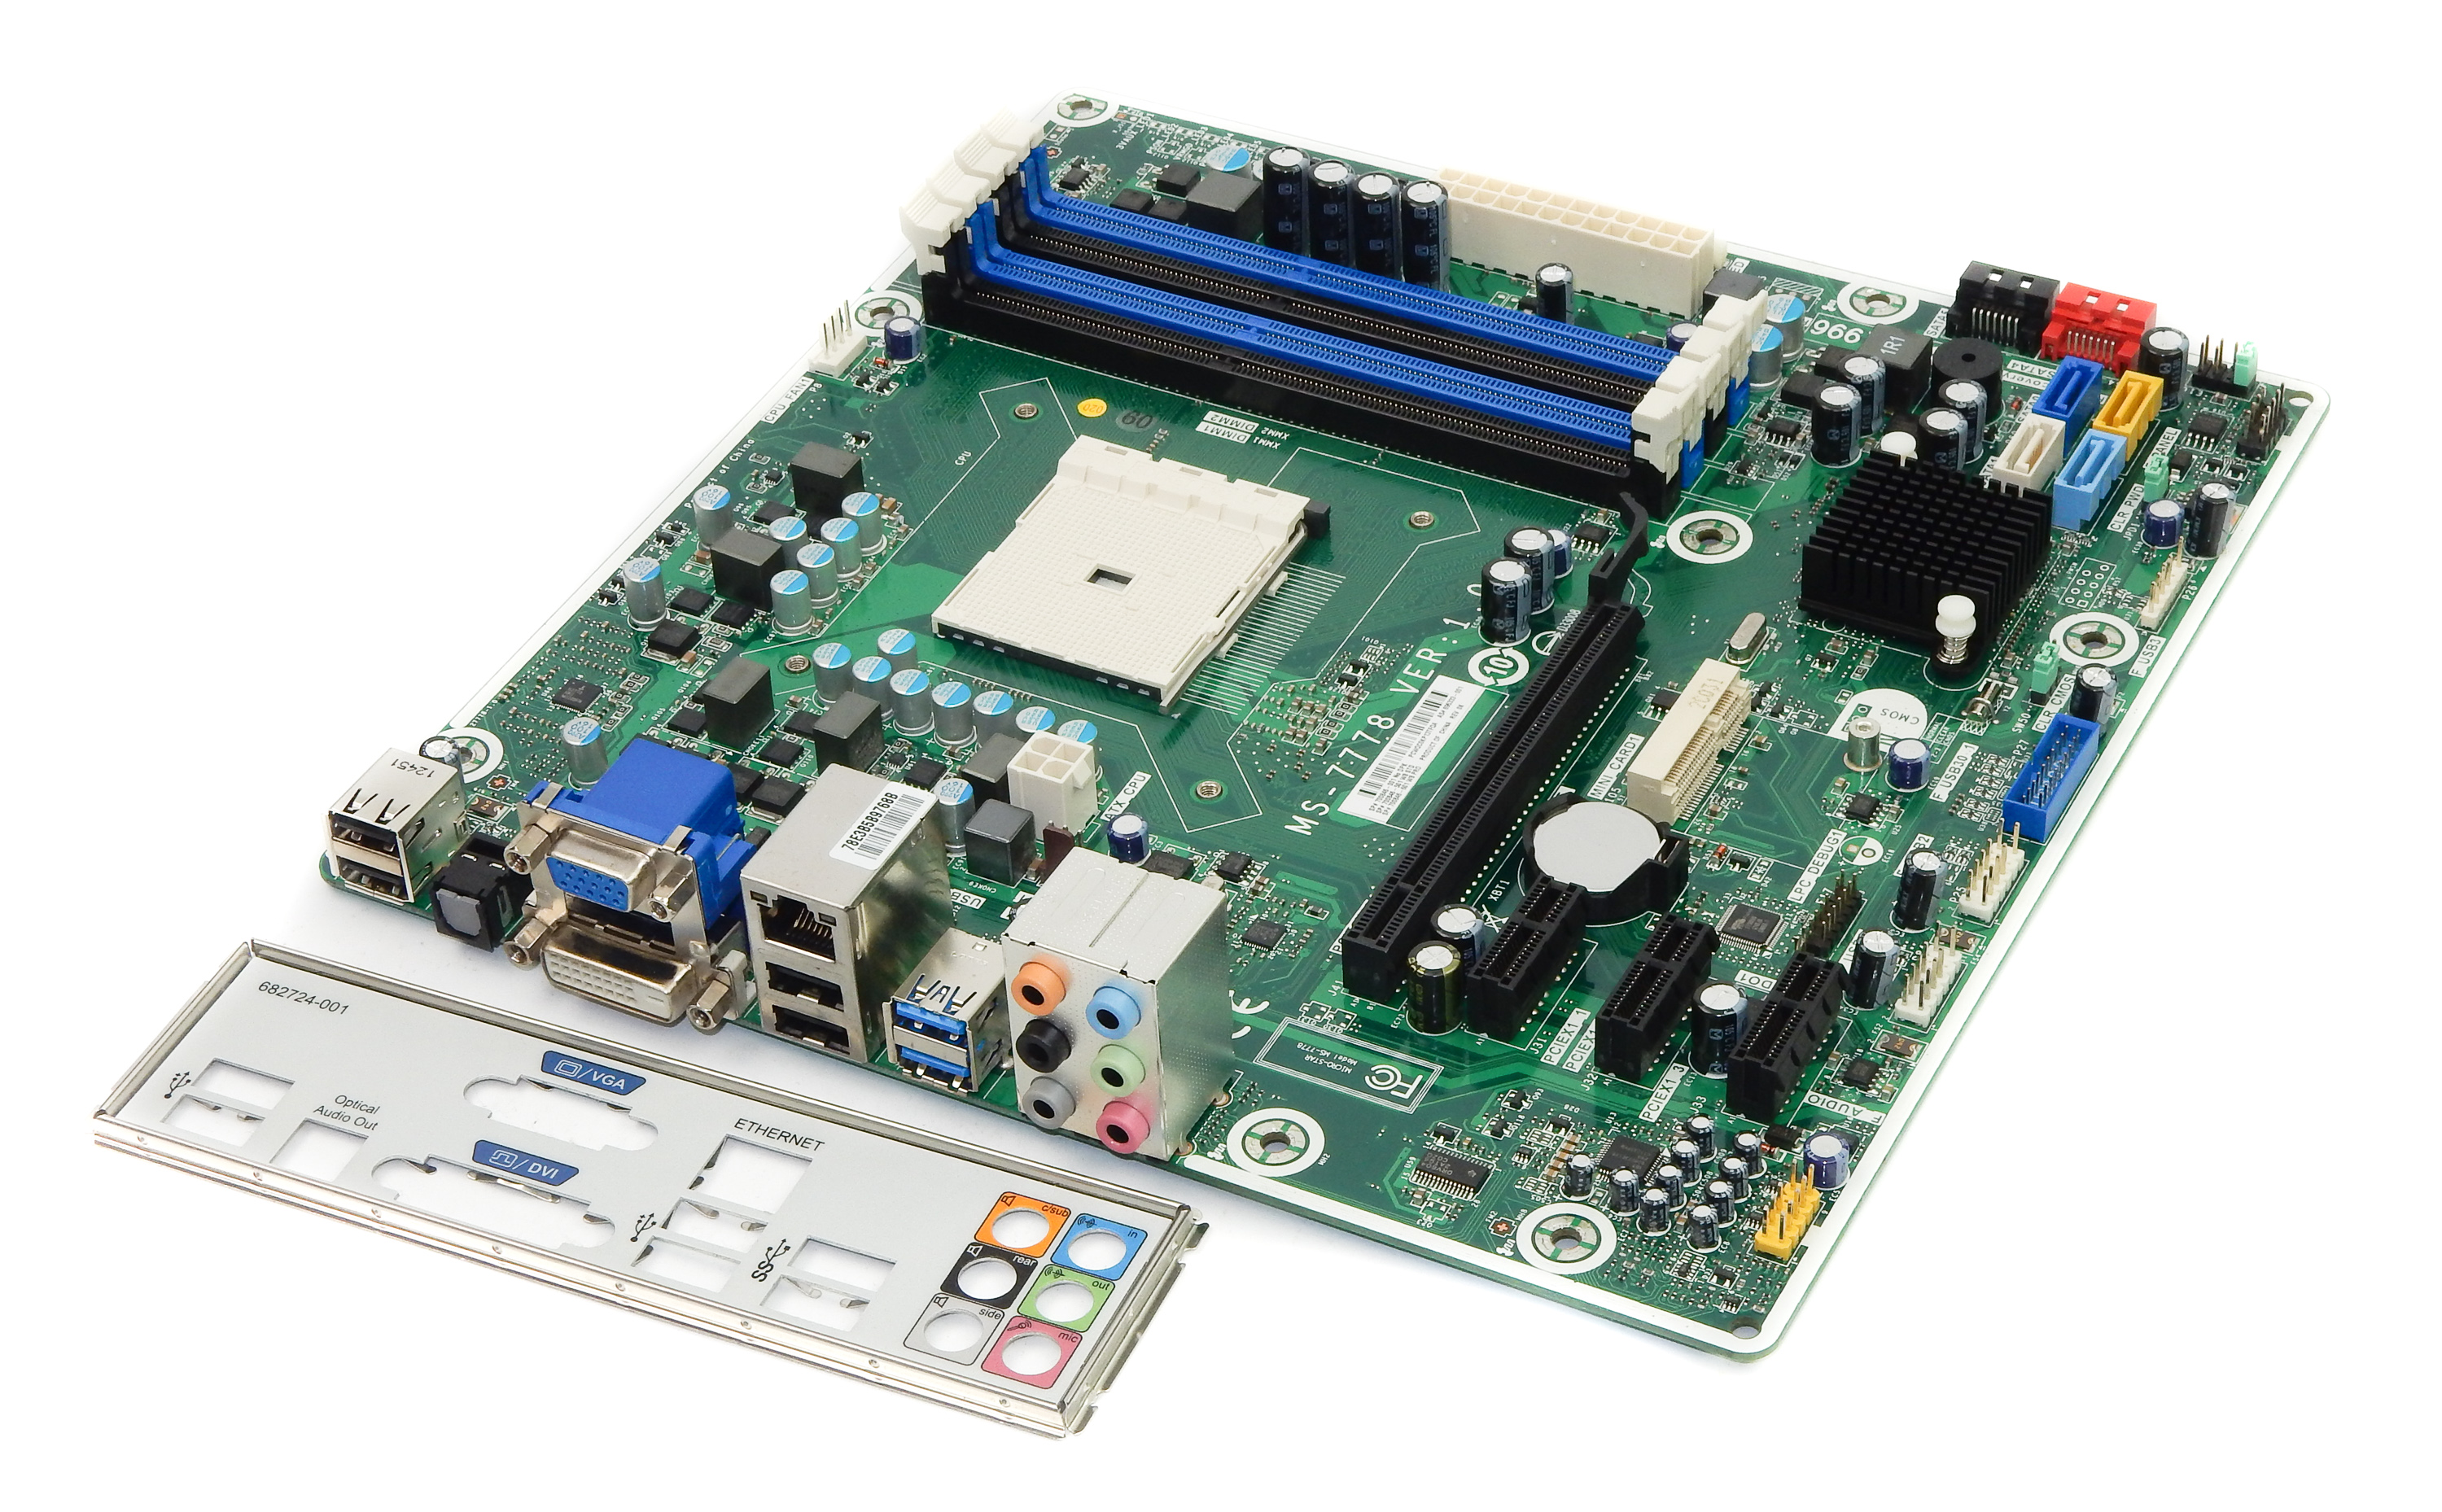 HP 696333-001 Pro 3515 Socket FM2 Motherboard - MS-7778 Ver:1.0